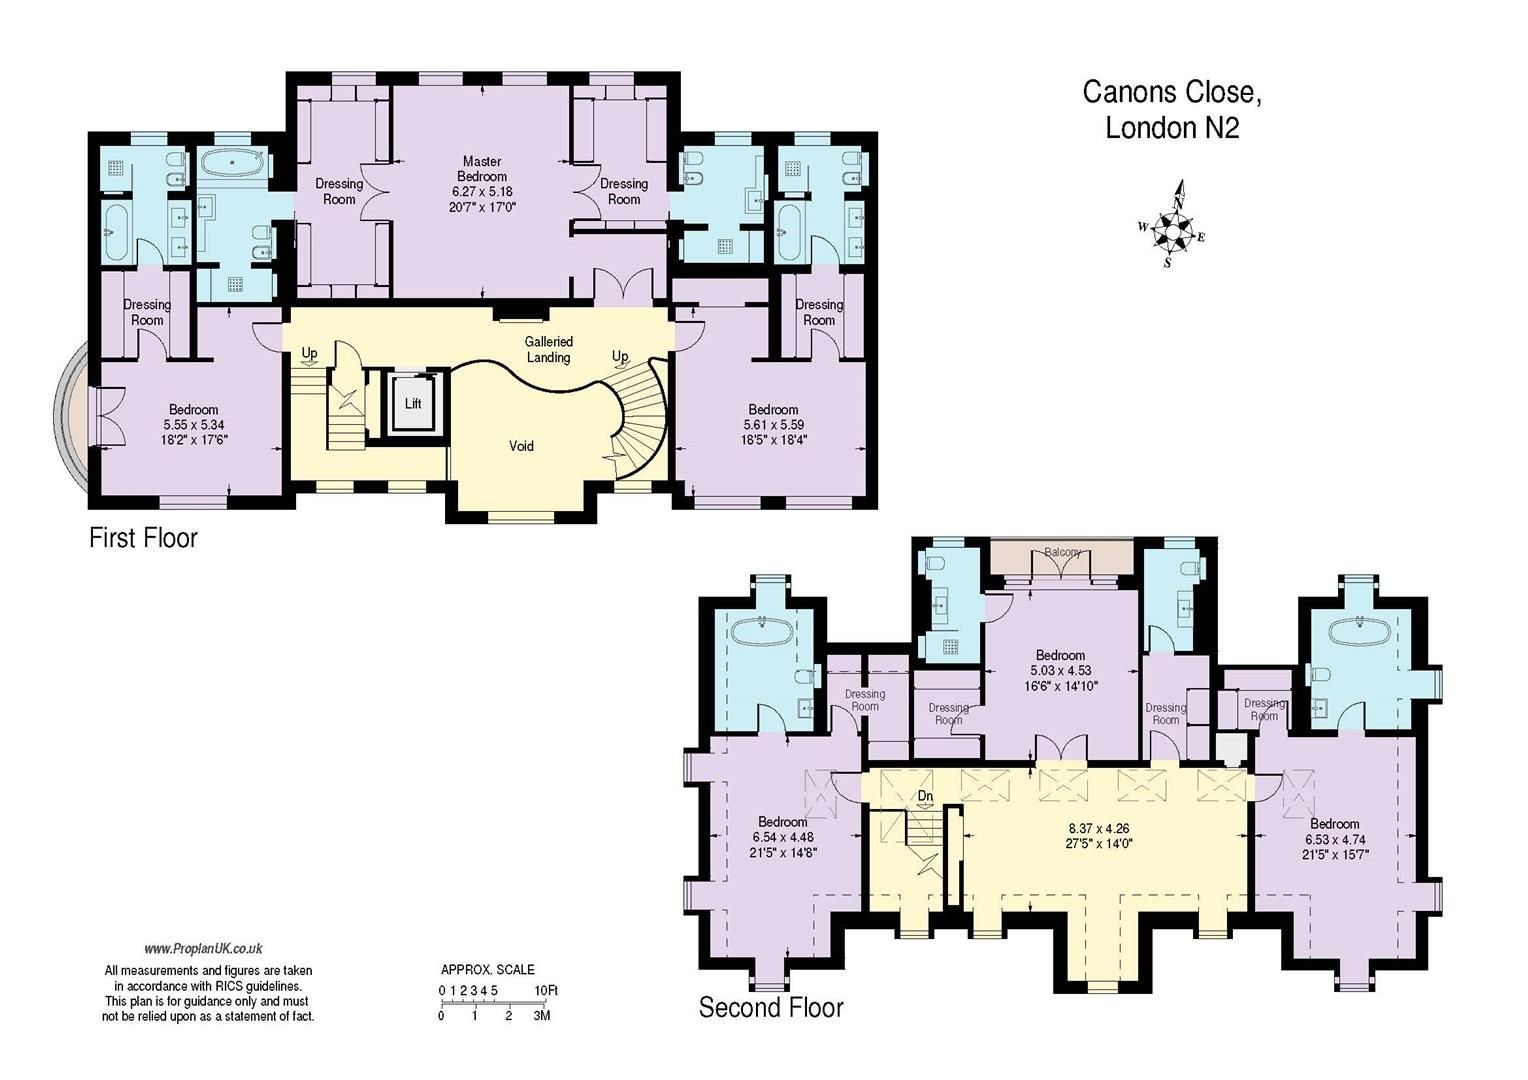 Detached House For Sale 6 Bedrooms In Canons Close London N2 16 000 000 Mansion Floor Plan Floor Plans Buying Property